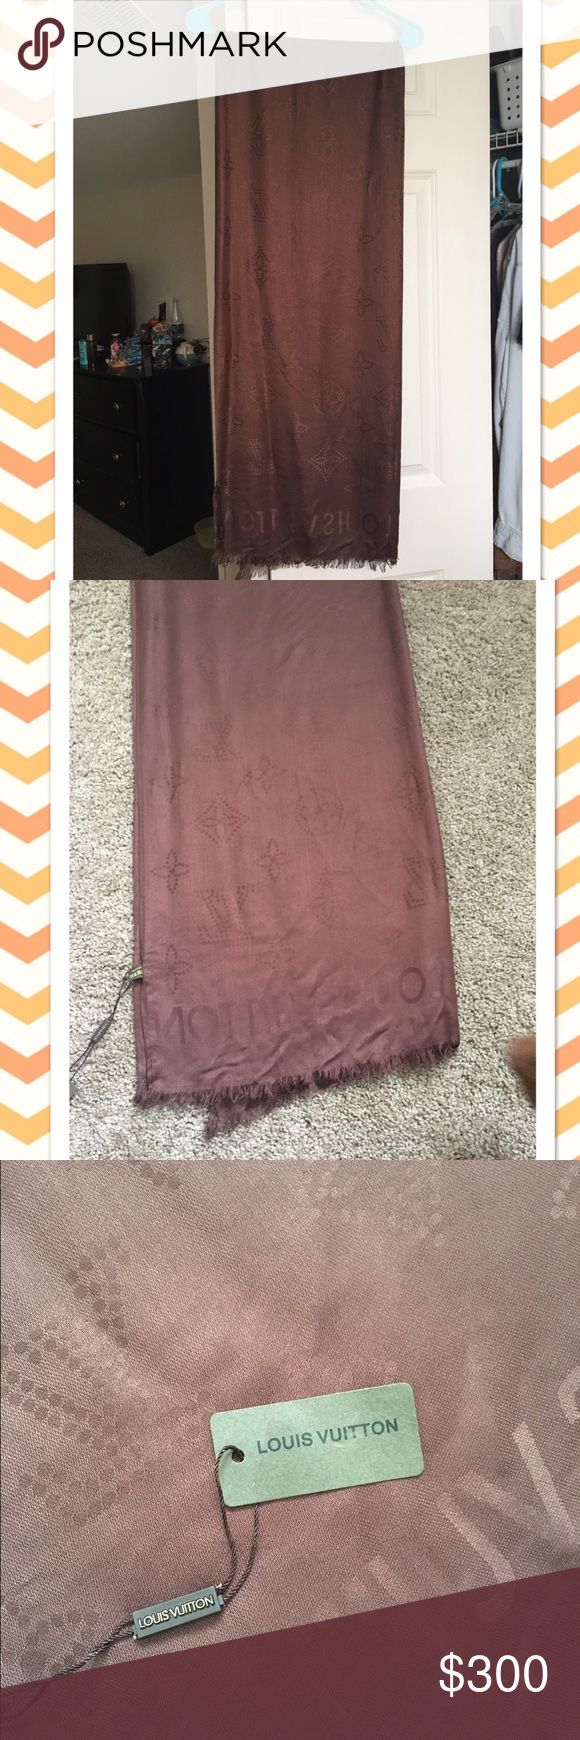 Real Louis Vuitton scarf New, never worn Louis Vuitton scarf in brown. Great condition! Very soft! No trades, but willing to negotiate price. Louis Vuitton Accessories Scarves & Wraps